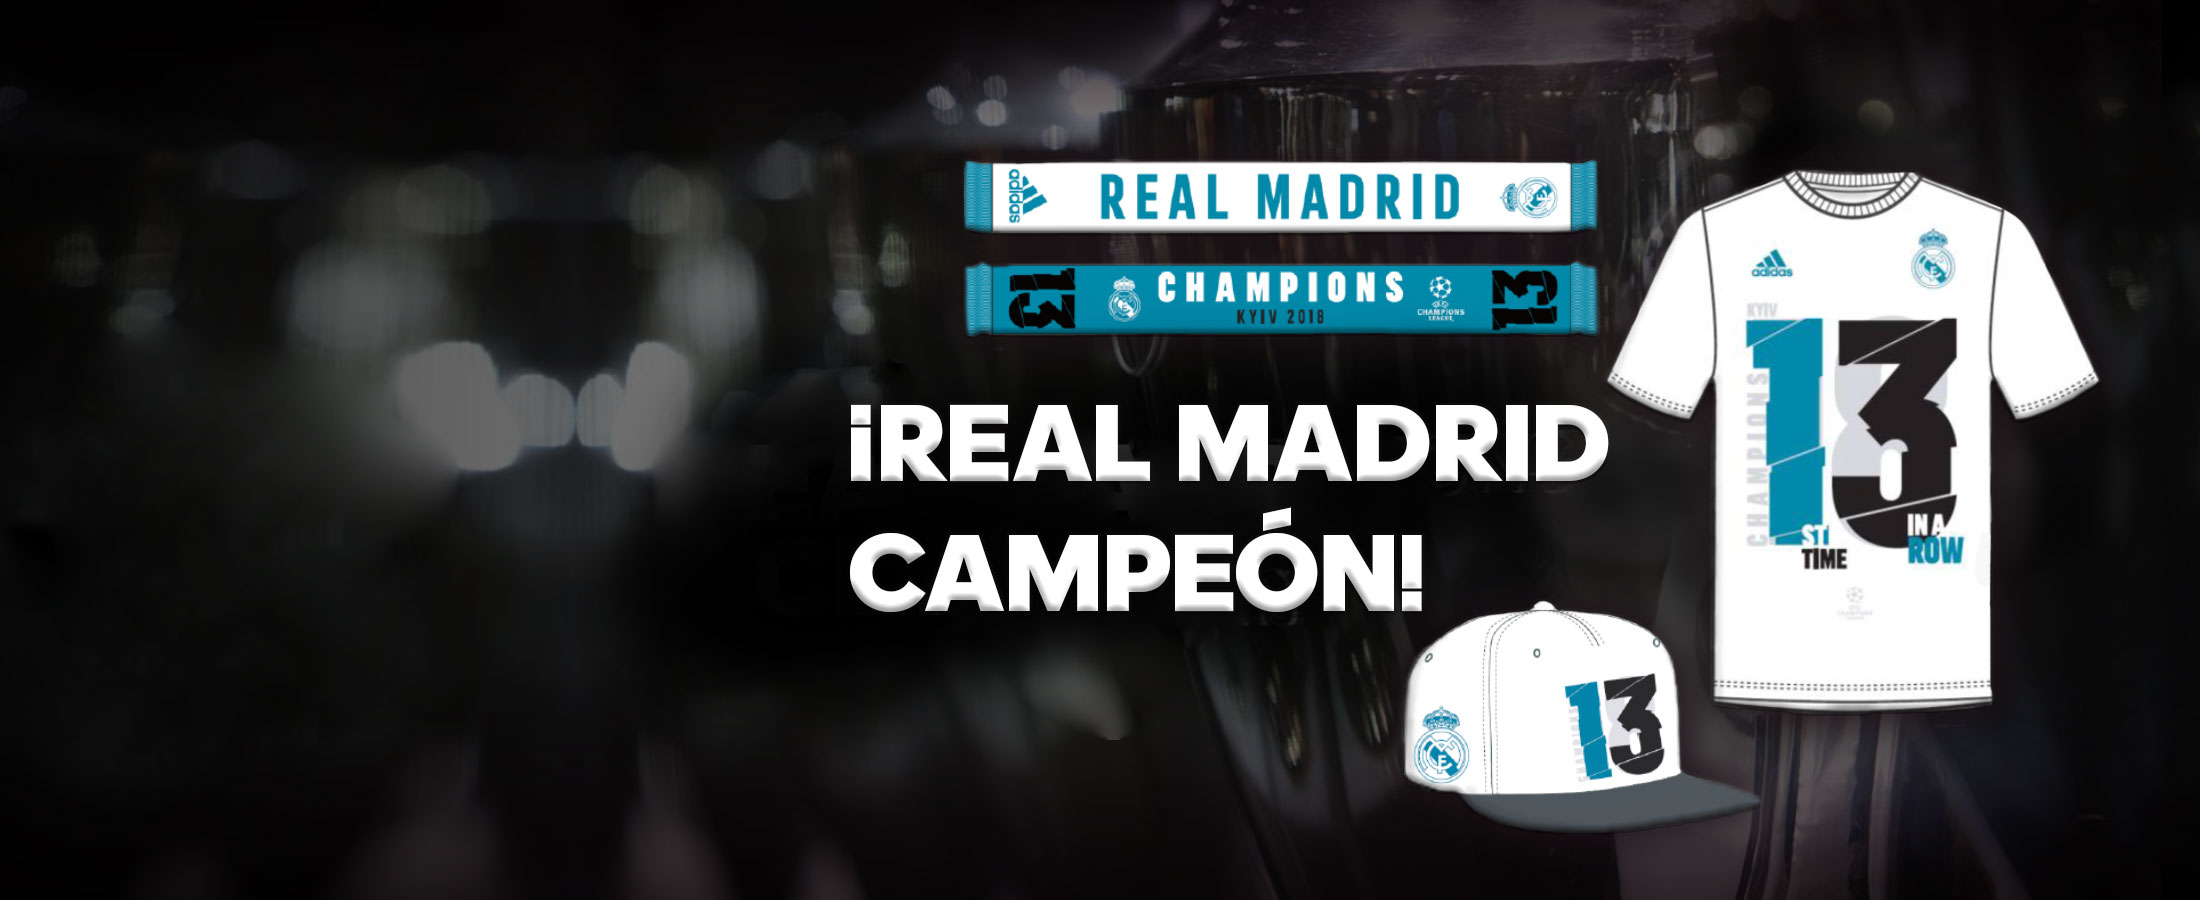 Camiseta Real Madrid 13 Champions